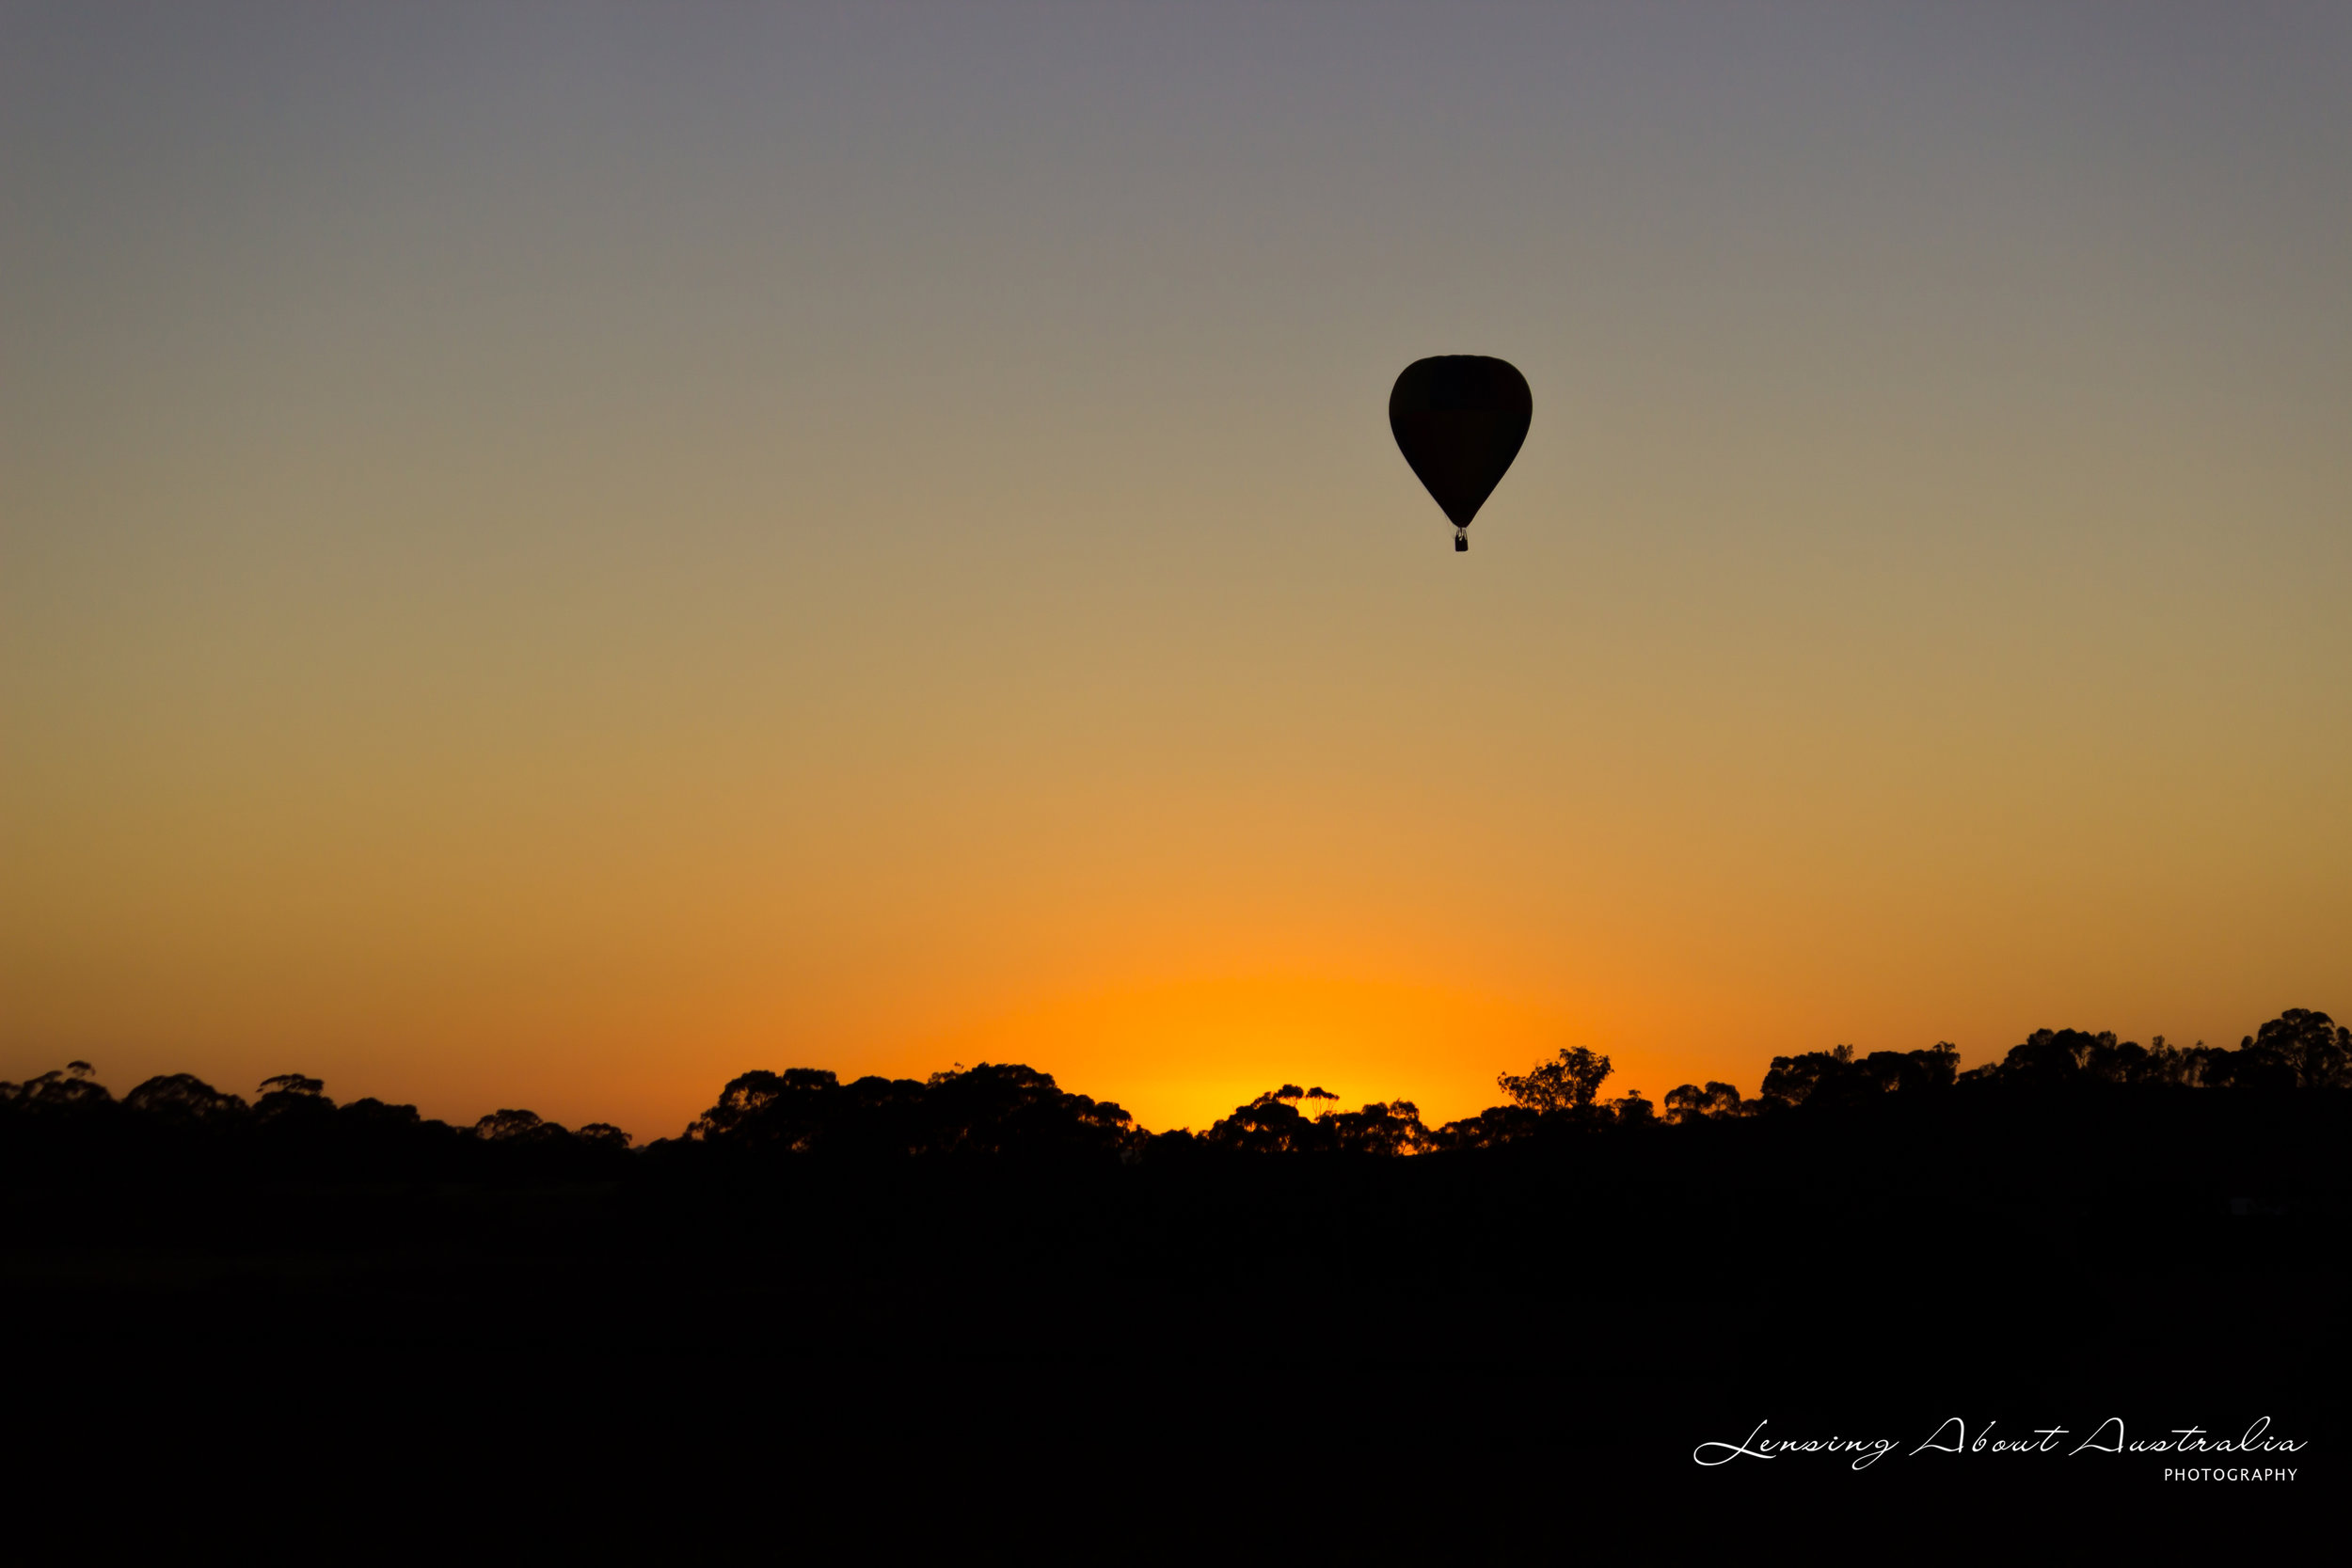 Hot Air Balloon Silhouette, Barossa Valley South Australia. https://lensingaboutaustralia.com